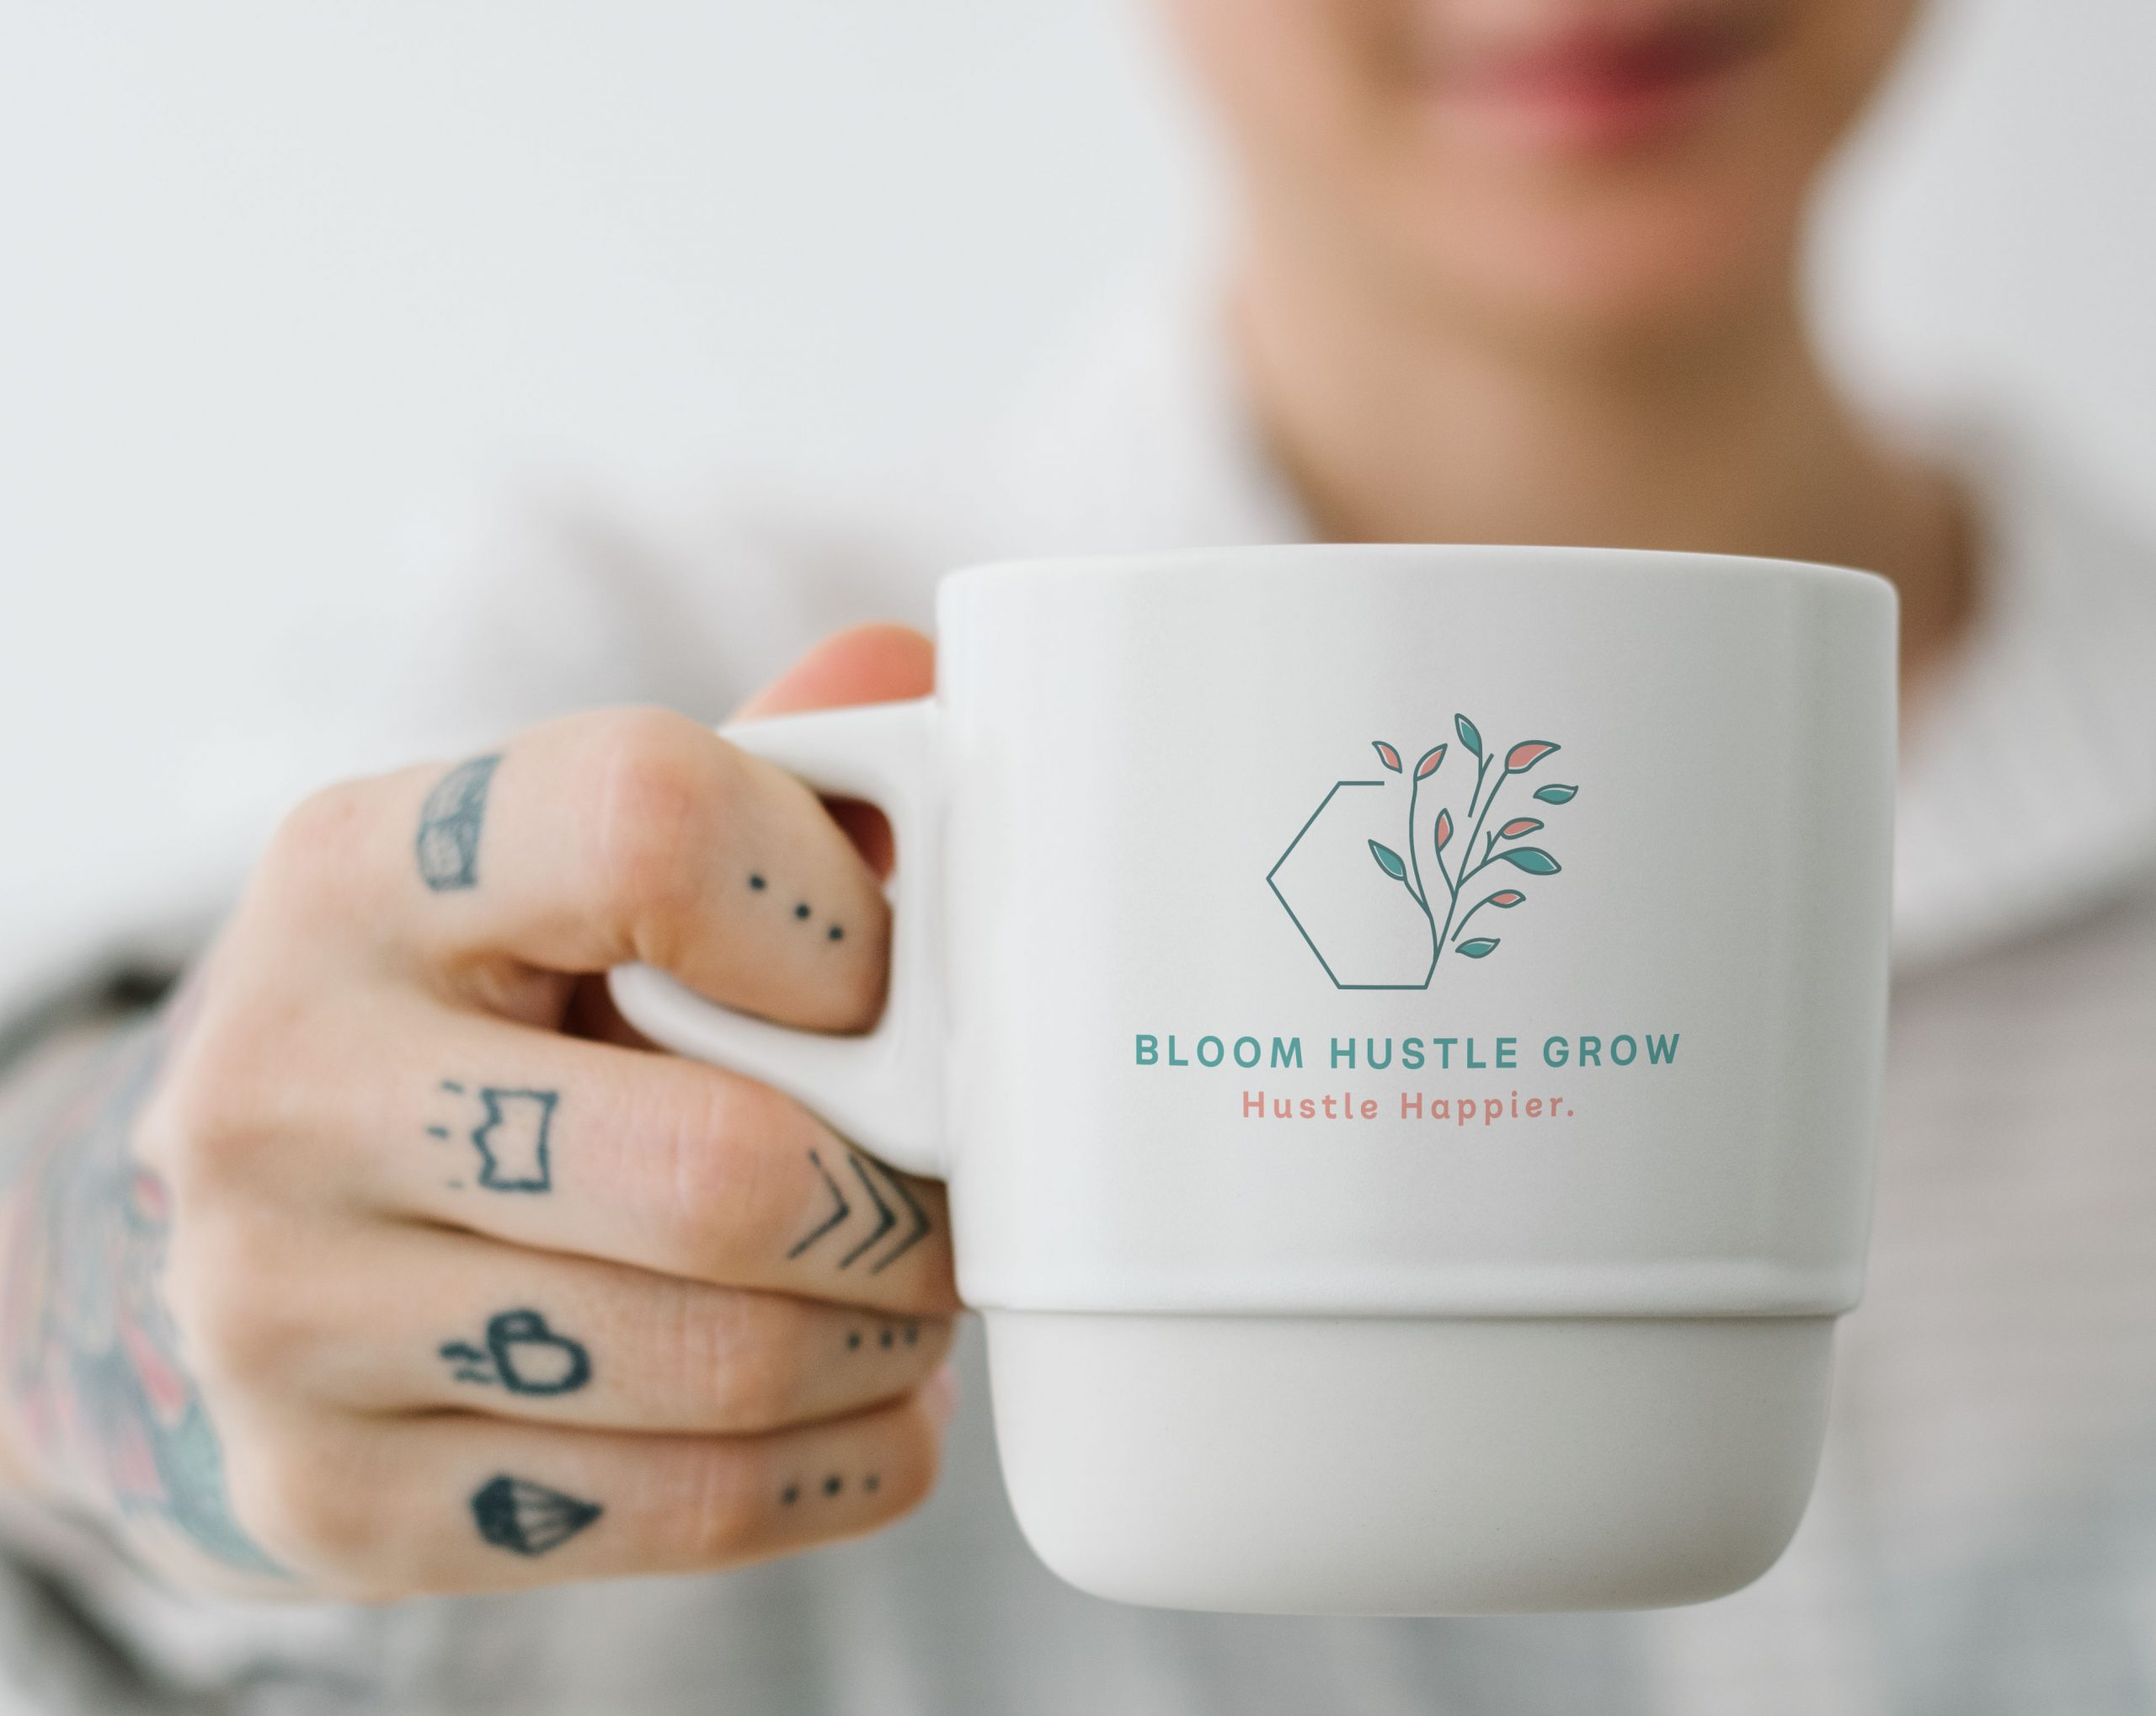 Bloom Hustle Grow logo mug / swag designed by C&V